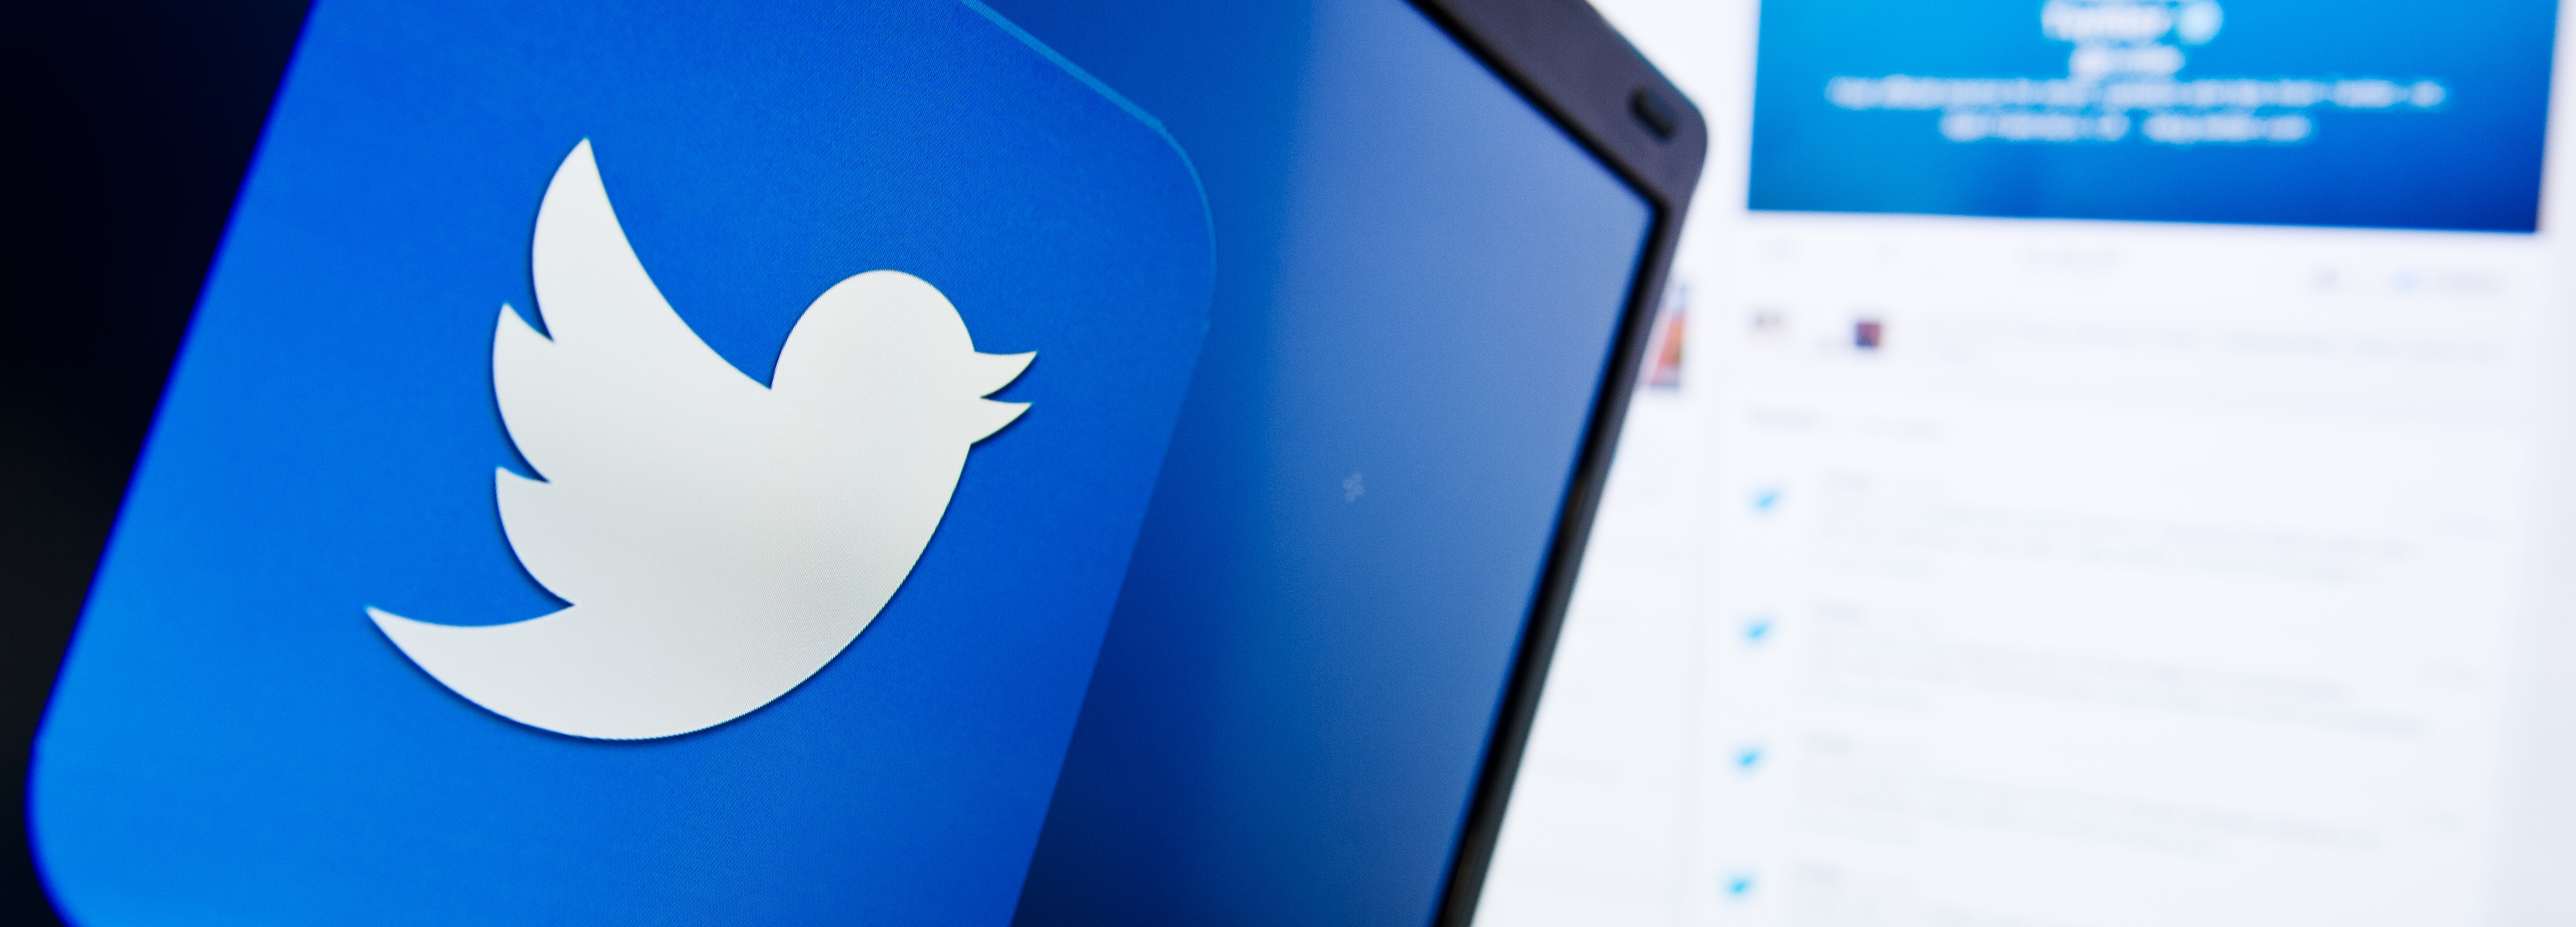 Twitter vulnerability lets apps send DMs without user permission